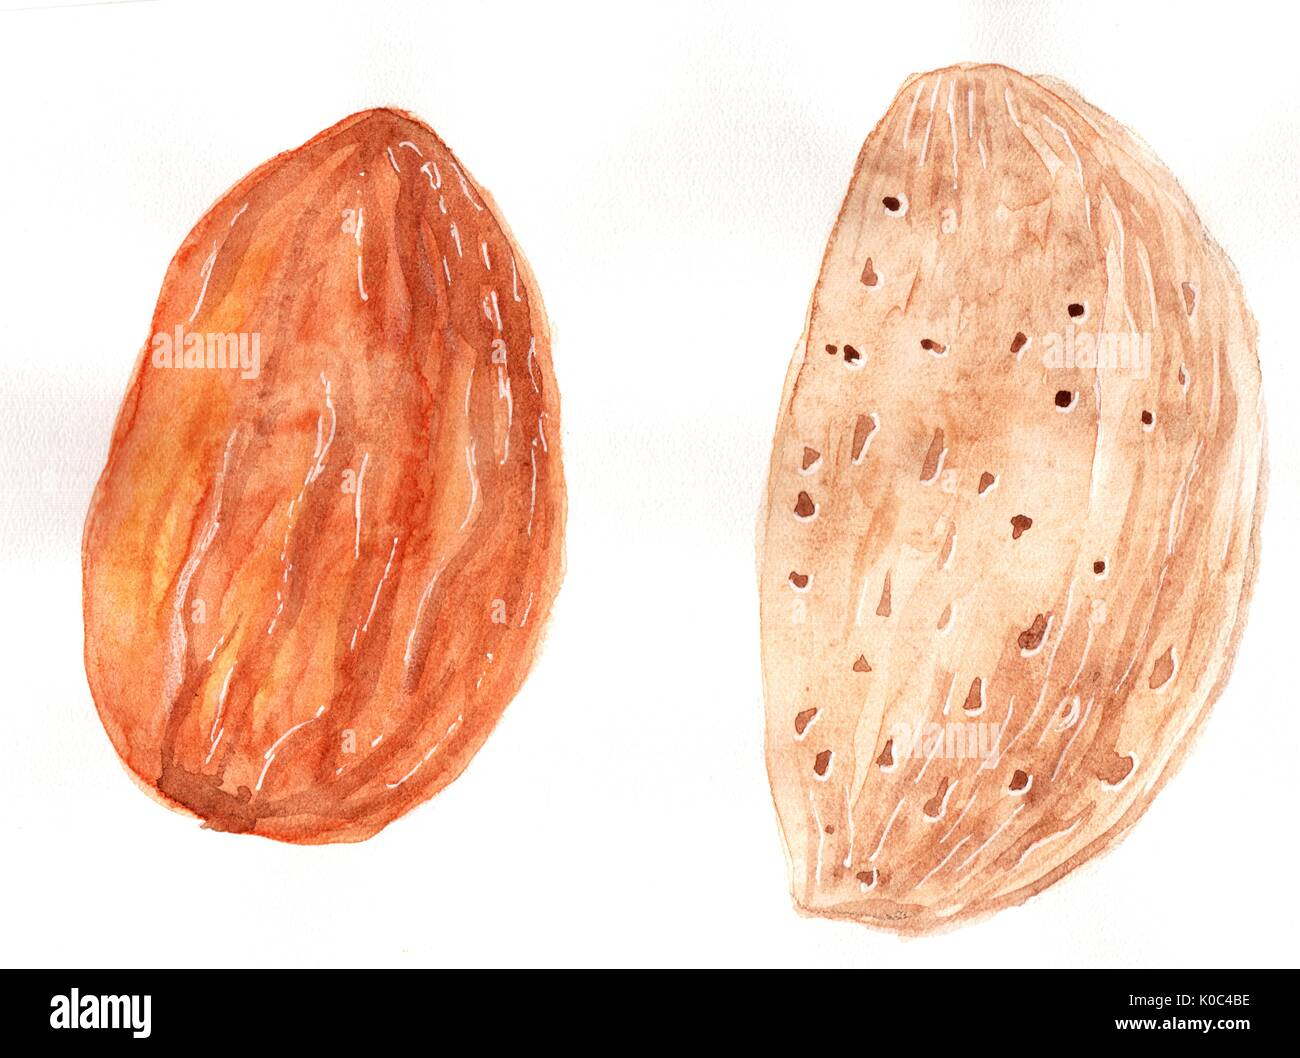 Nut almonds. In the shell and purified kernel. Hand drawing watercolor. Very detailed illustration of a large size. For the food and cosmetic industry - Stock Image